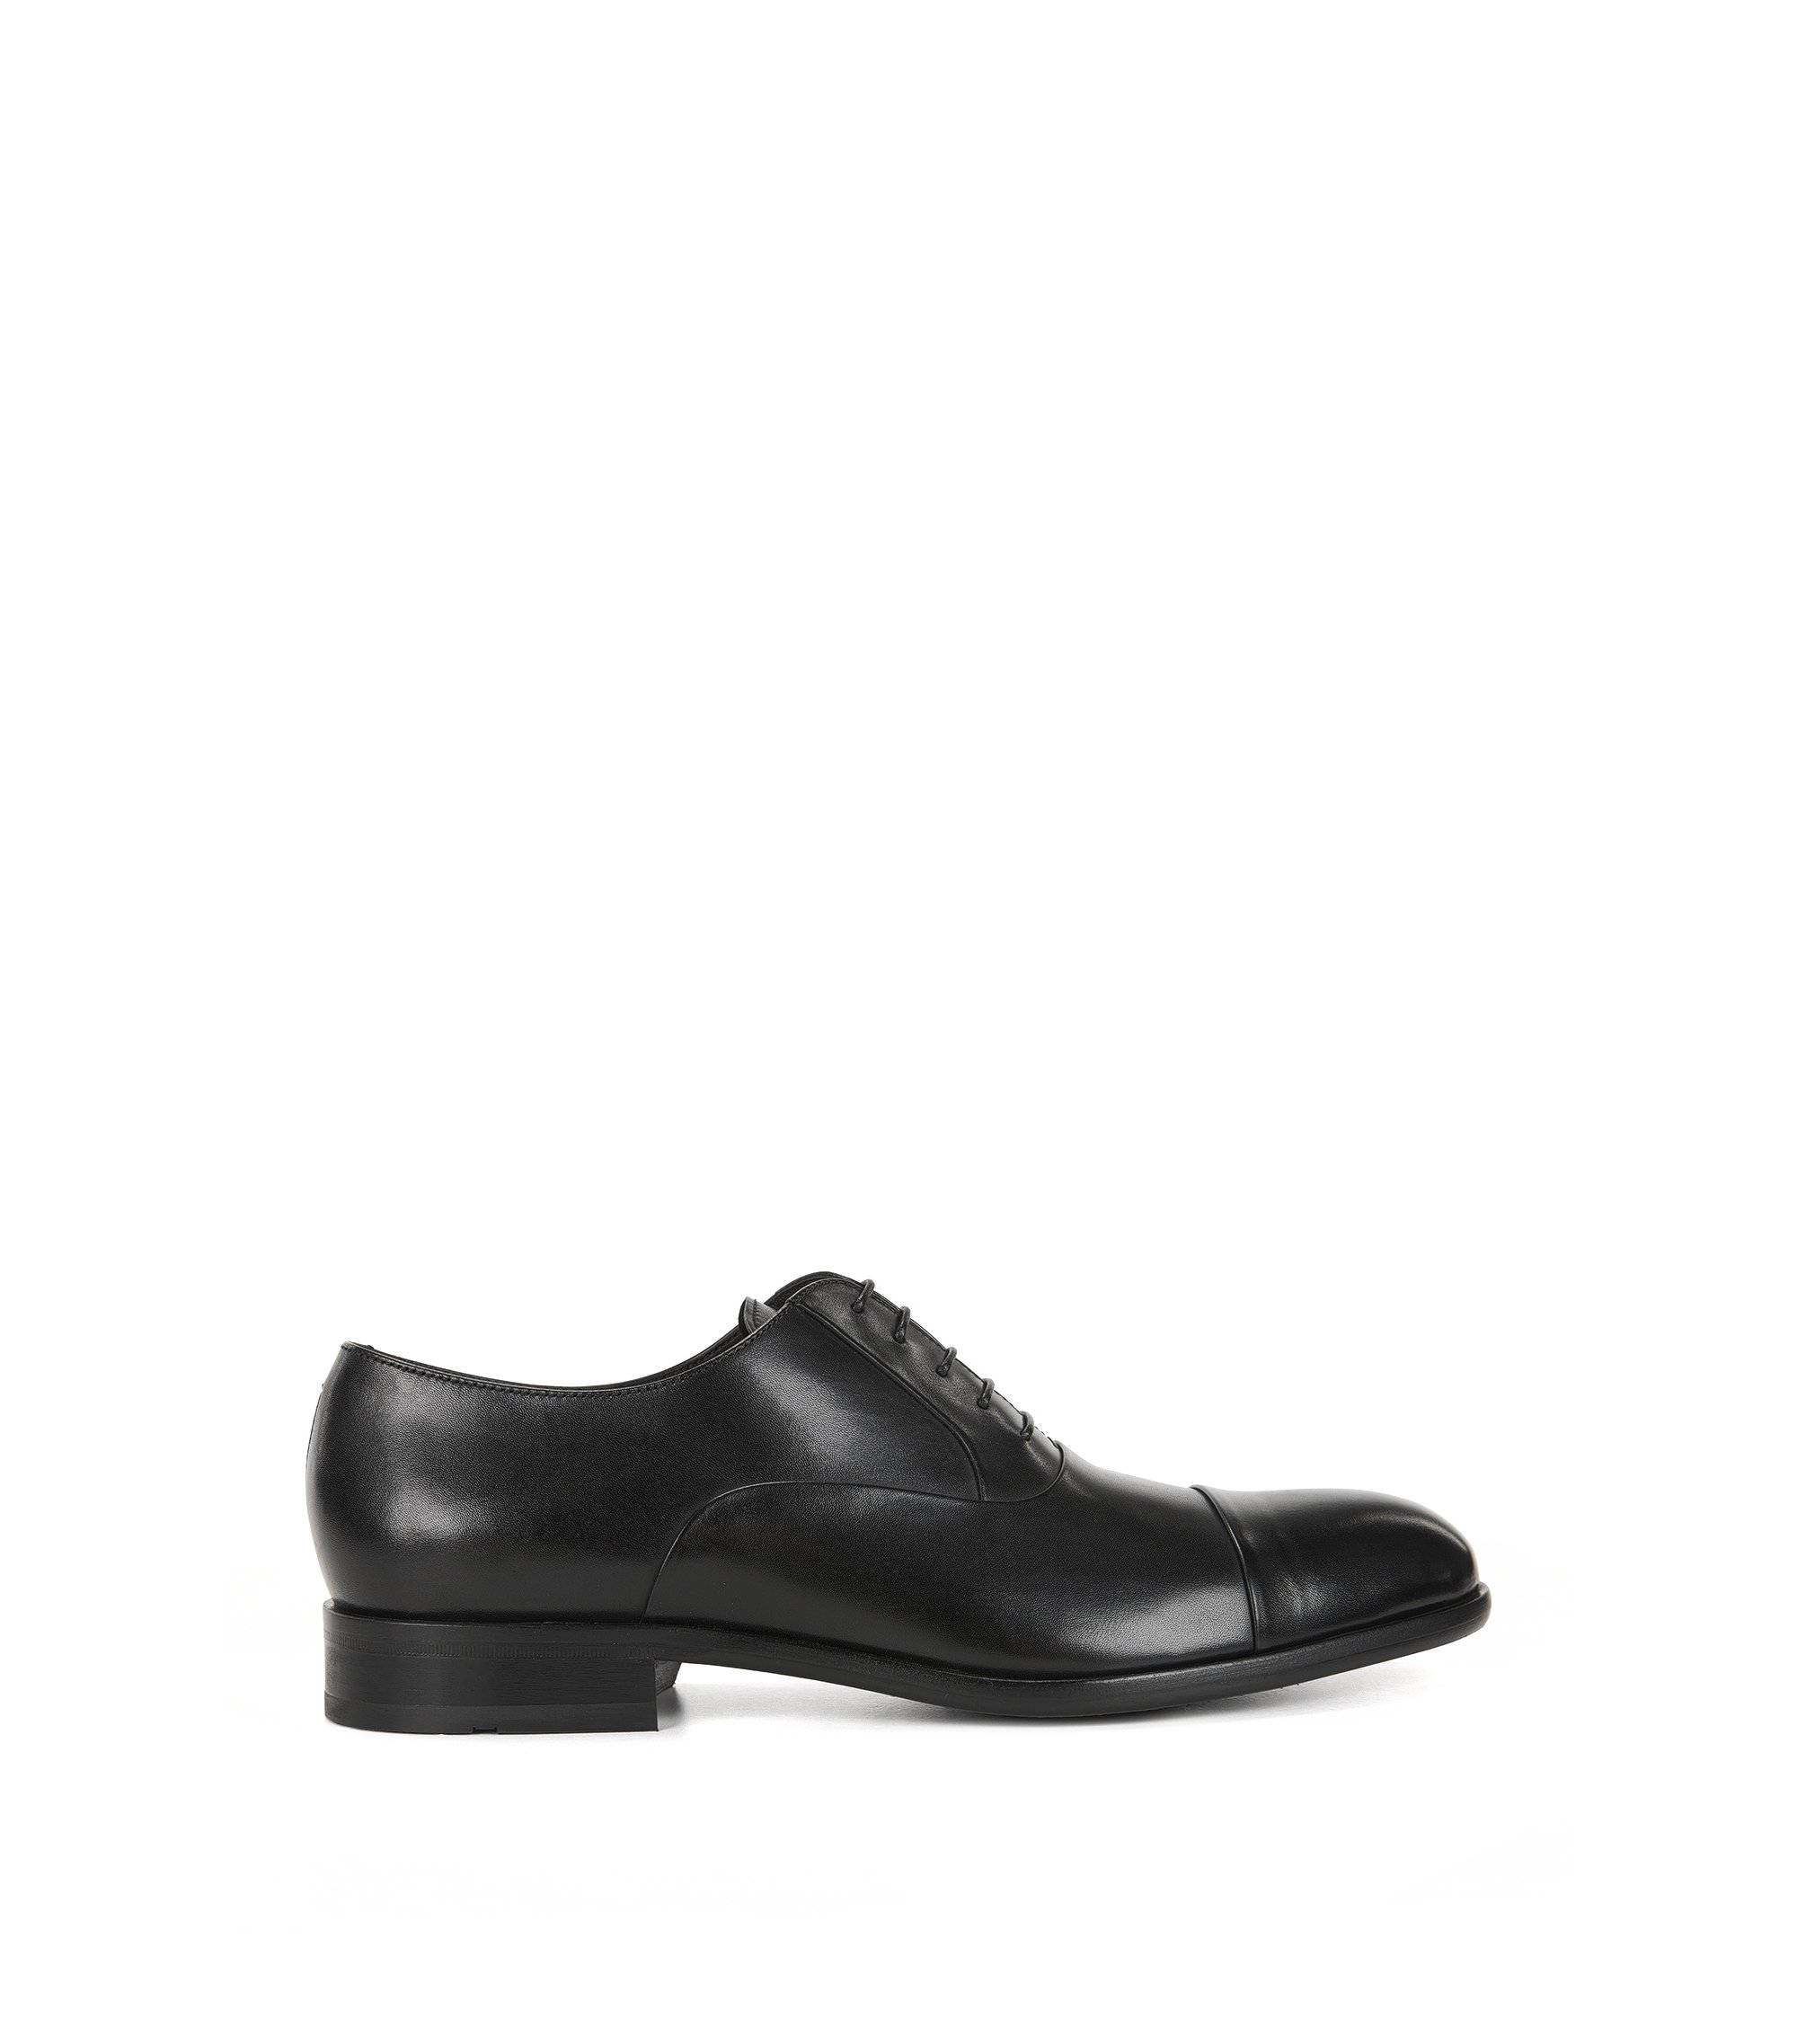 Lace-up Oxford shoes in polished leather, Nero